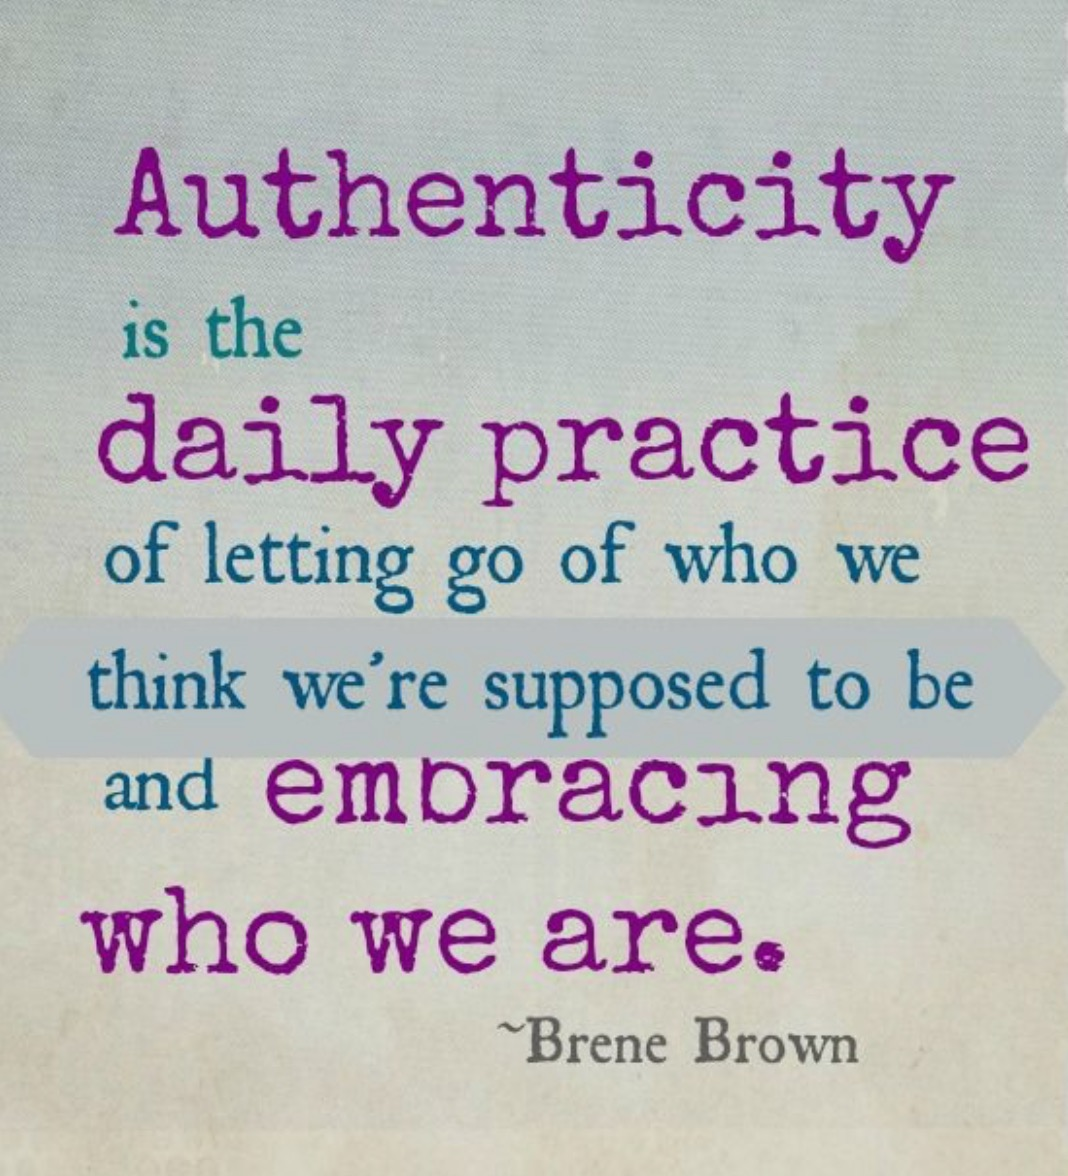 Project Share Day 15: Authenticity